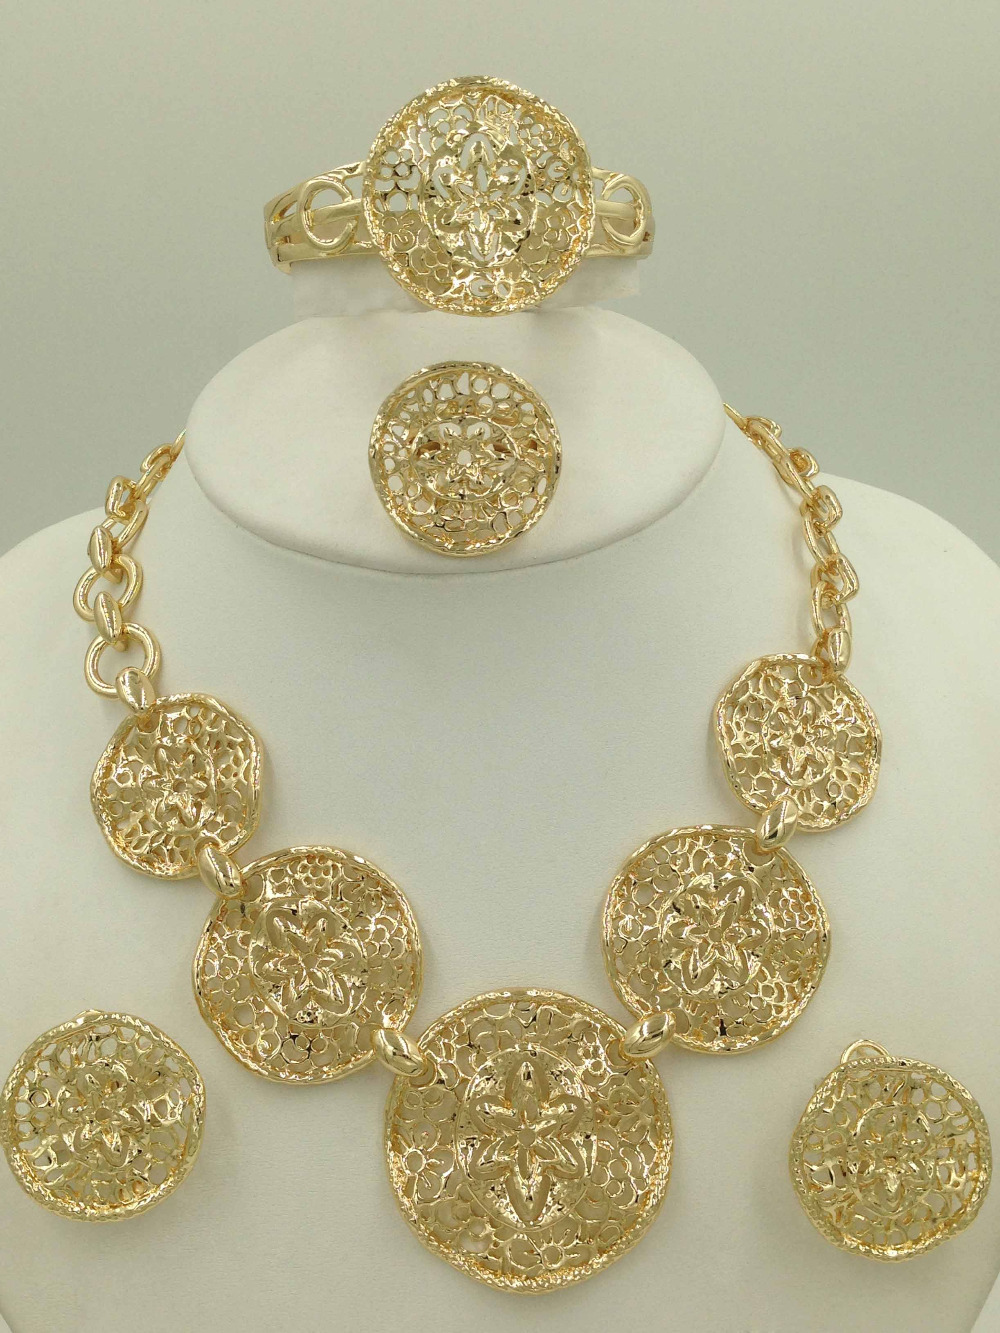 Buy gorgeous18k dubai gold plated jewelry sets fashion summer style folli Design and style fashion jewelry